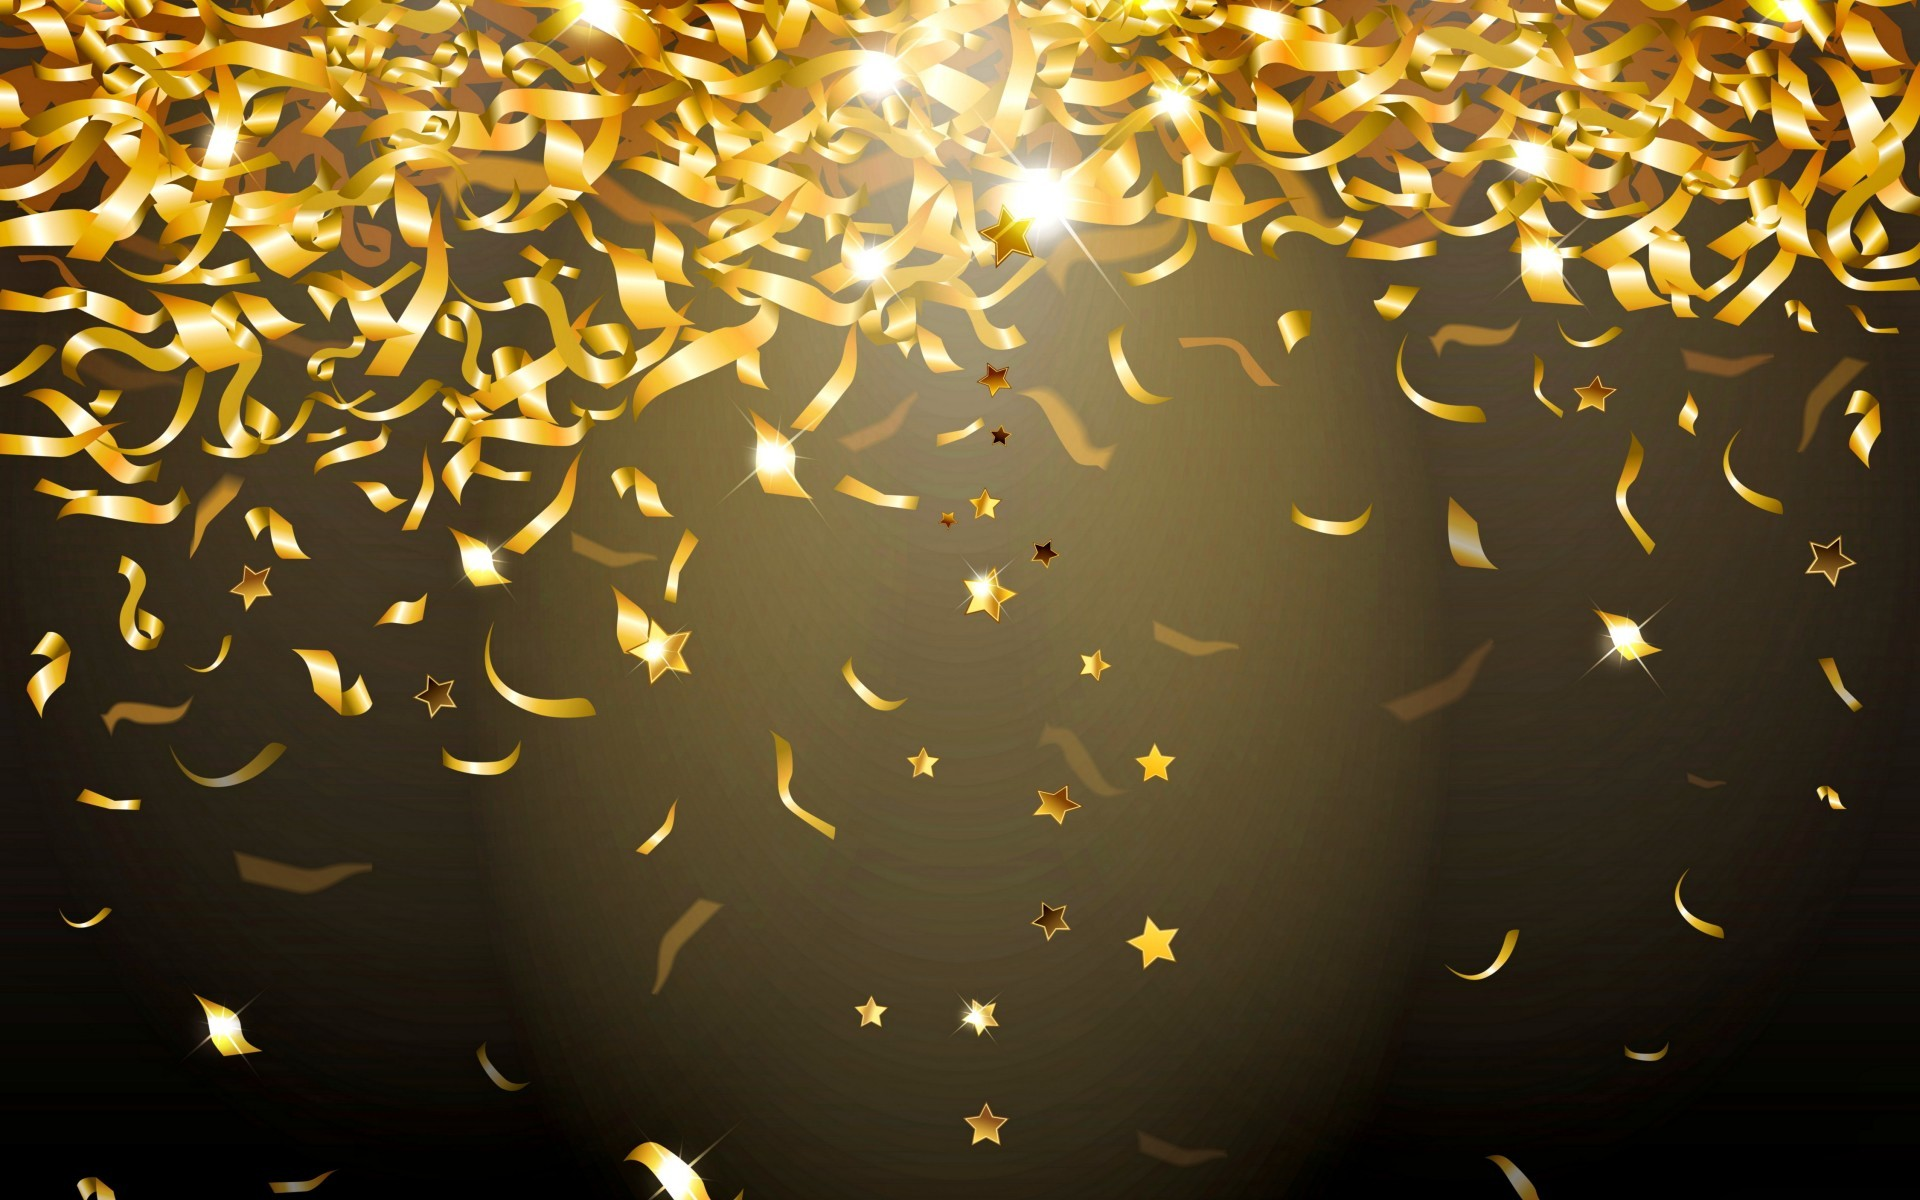 Gold Sparkle HD Wallpapers | Backgrounds | Very Glittery! | Pinterest | Gold  sparkle, Sparkle wallpaper and Gold